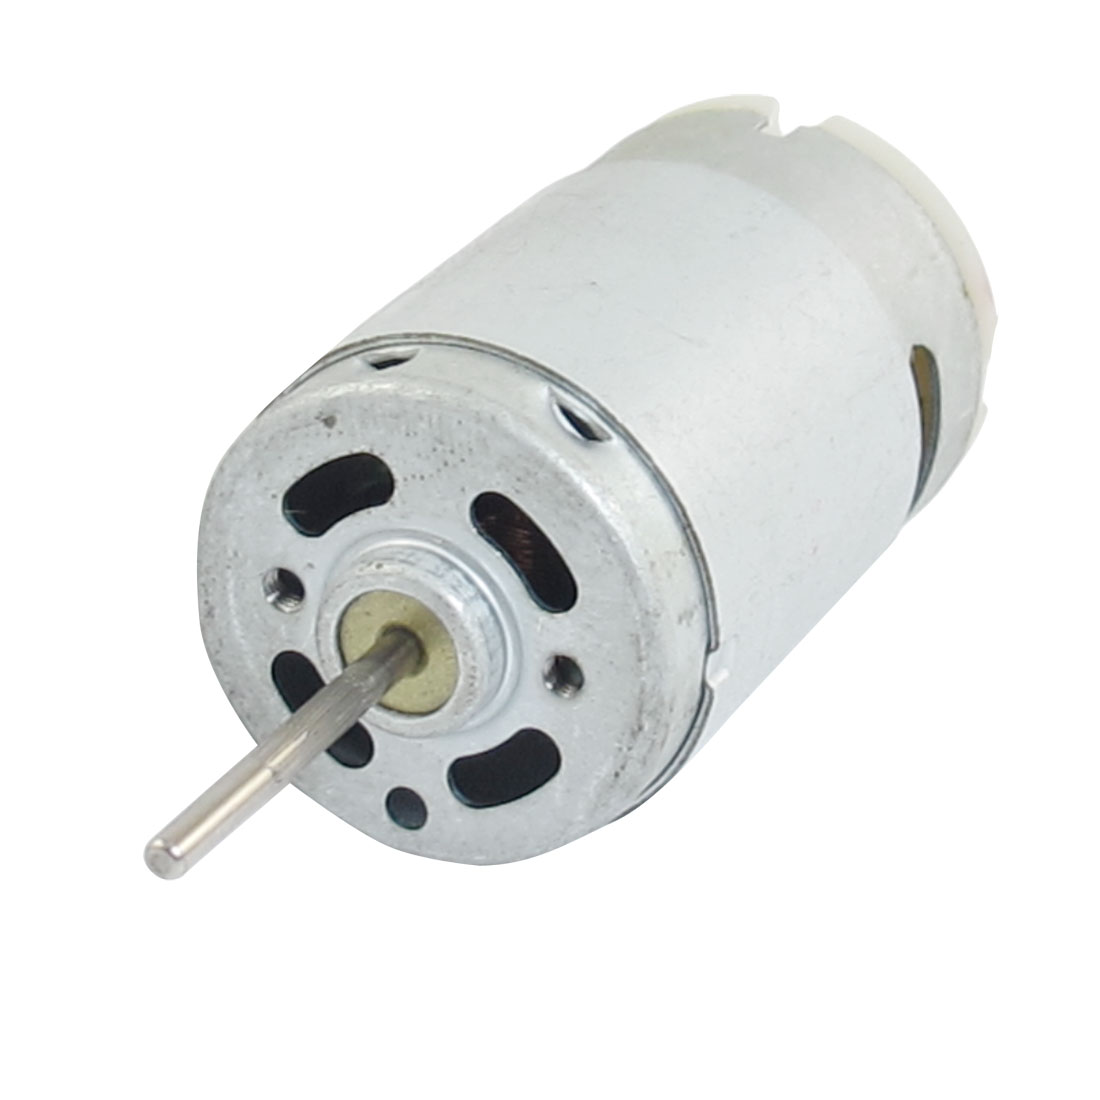 4000RPM DC 6V 2.3mm Shaft Diameter 2 Terminals Electric Magnetic Motor